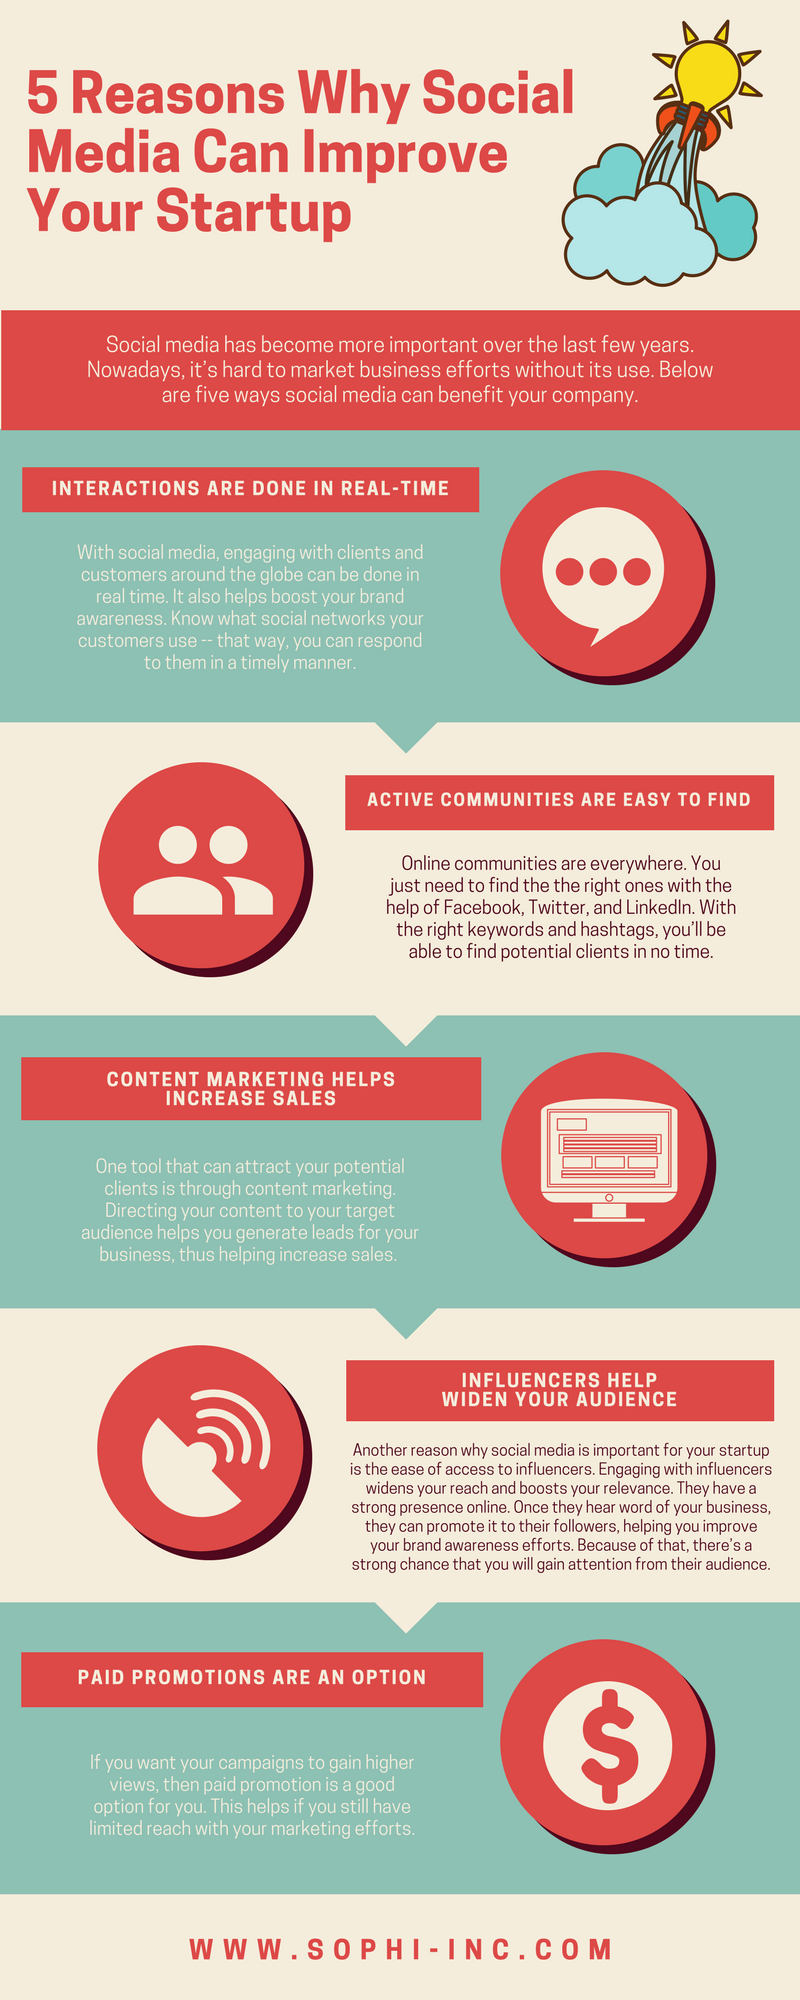 5 Reasons Social Media Can Improve Your Startup.png